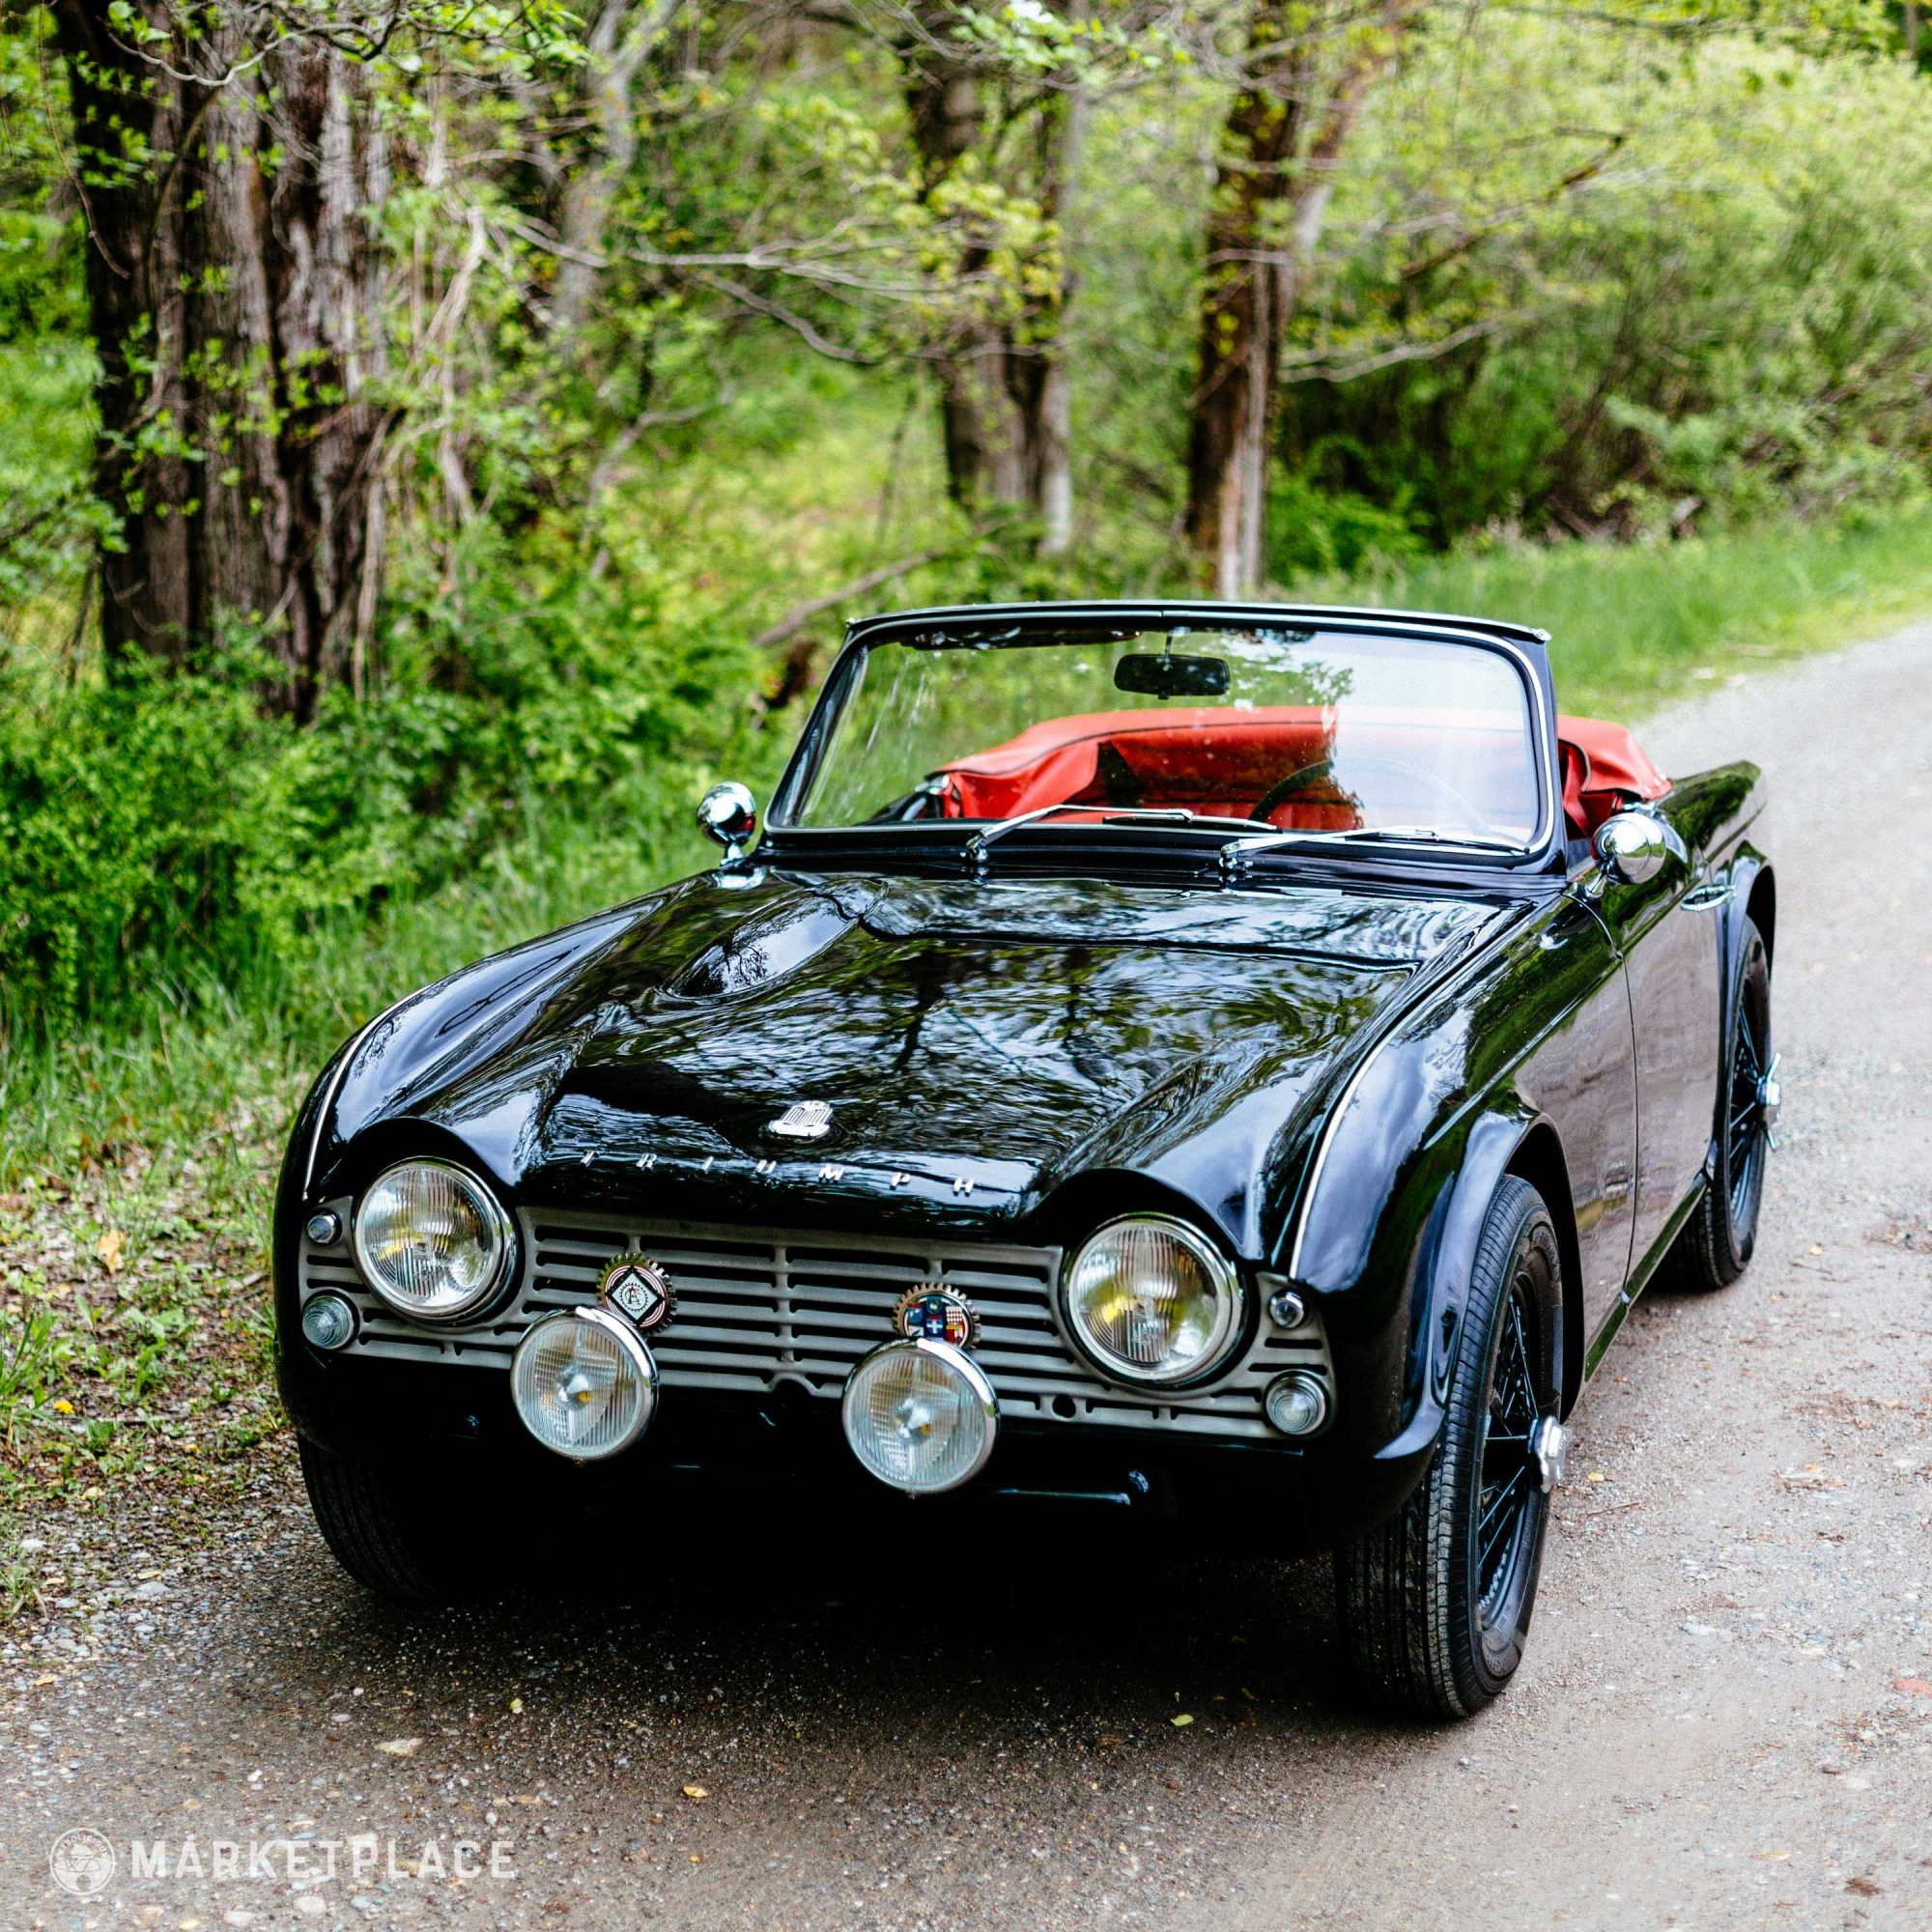 1961 Triumph TR4 w/ Engine Audio Clips | EVERYTHING COOL